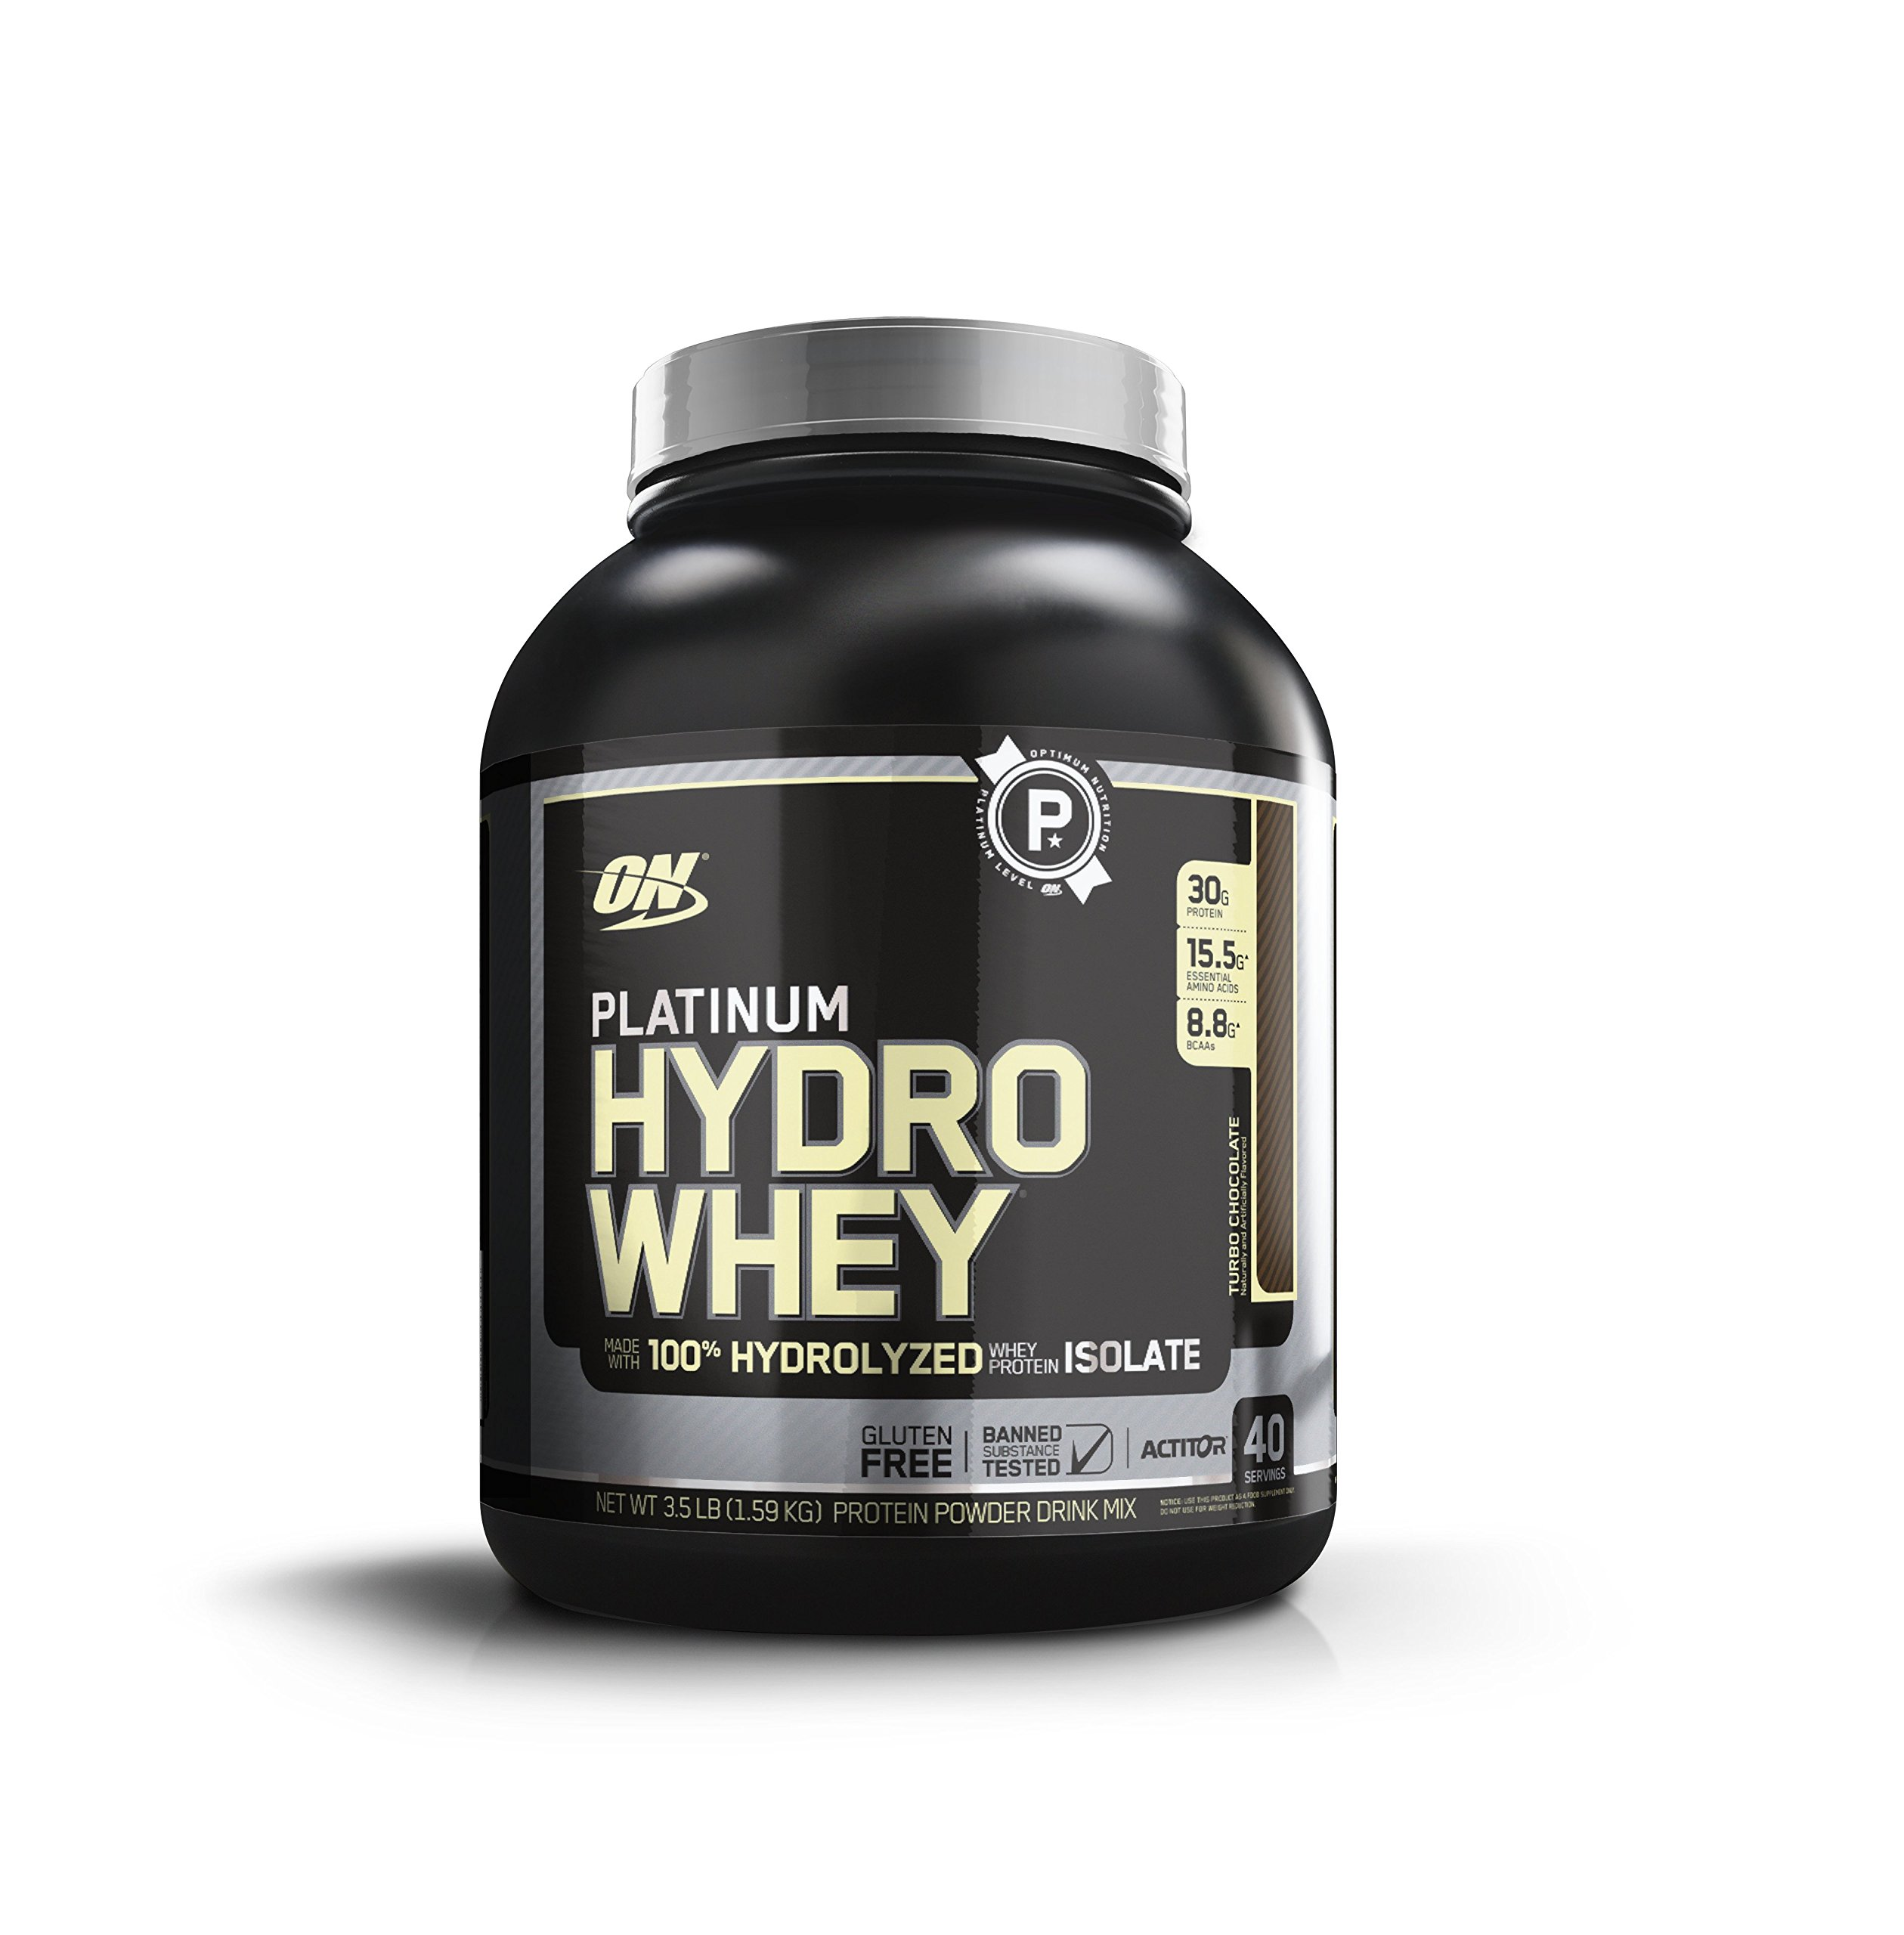 OPTIMUM NUTRITION Platinum Hydrowhey Protein Powder, 100% Hydrolyzed Whey Protein Isolate Powder, Flavor: Turbo Chocolate, 3.5 Pounds by Optimum Nutrition